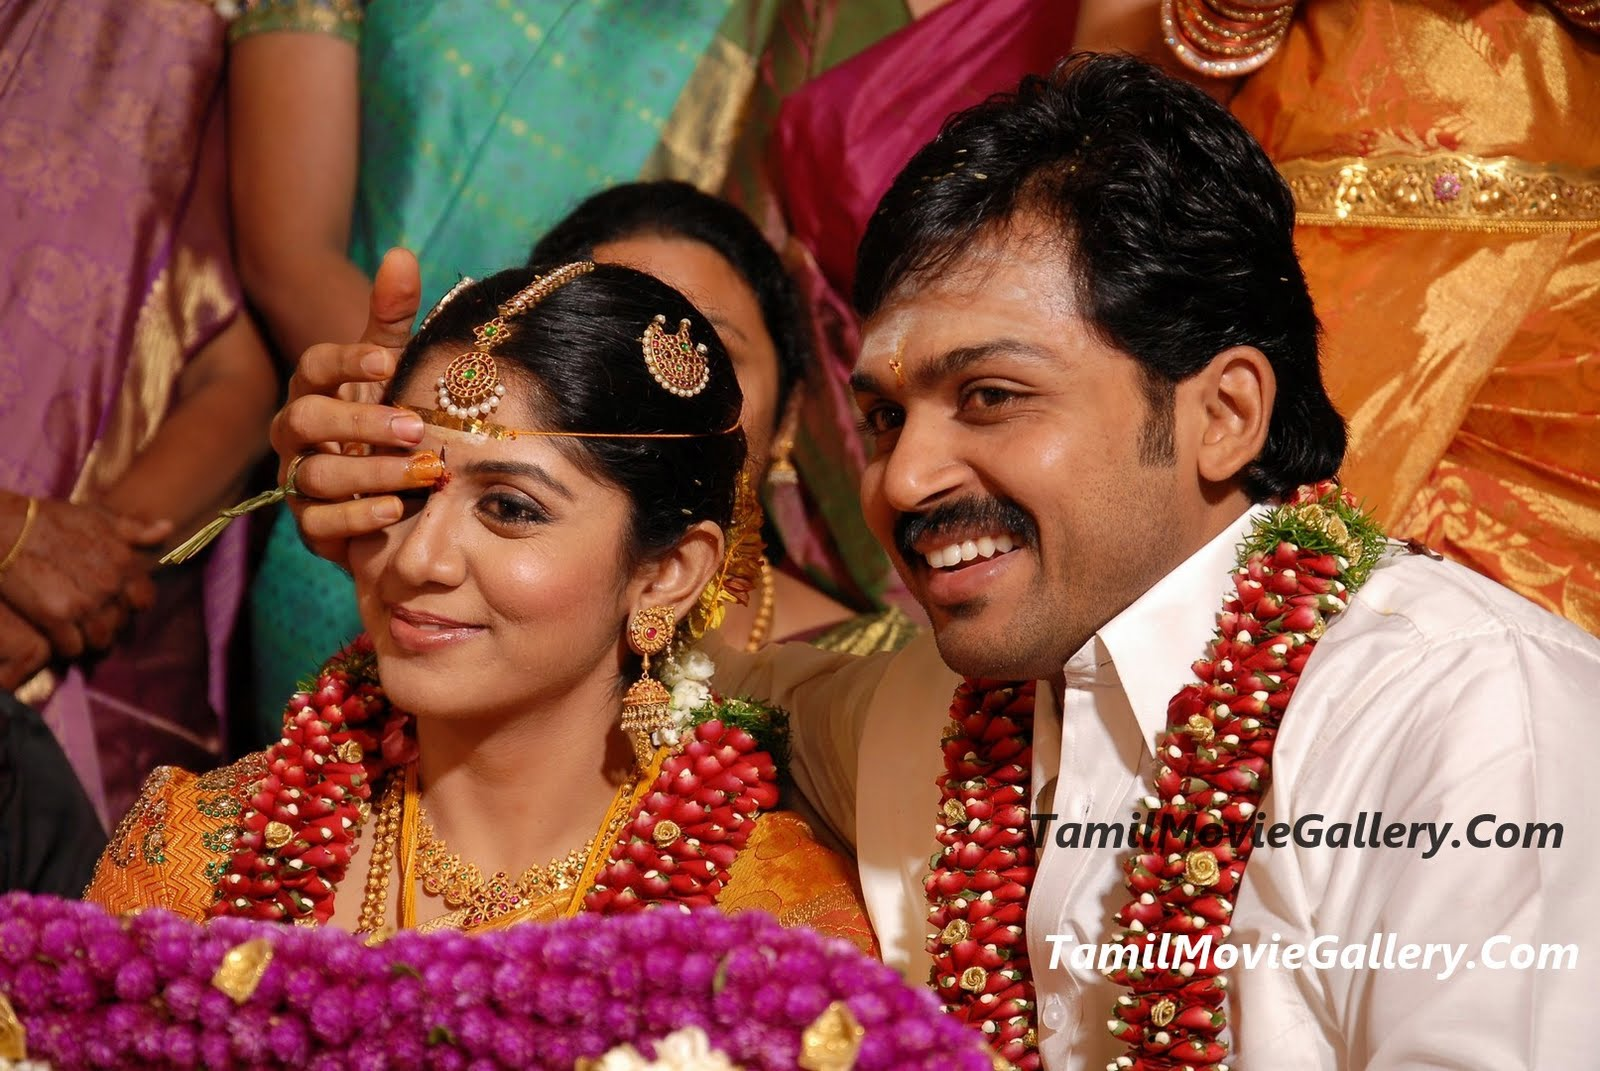 Karthik Tamil Actor Wedding